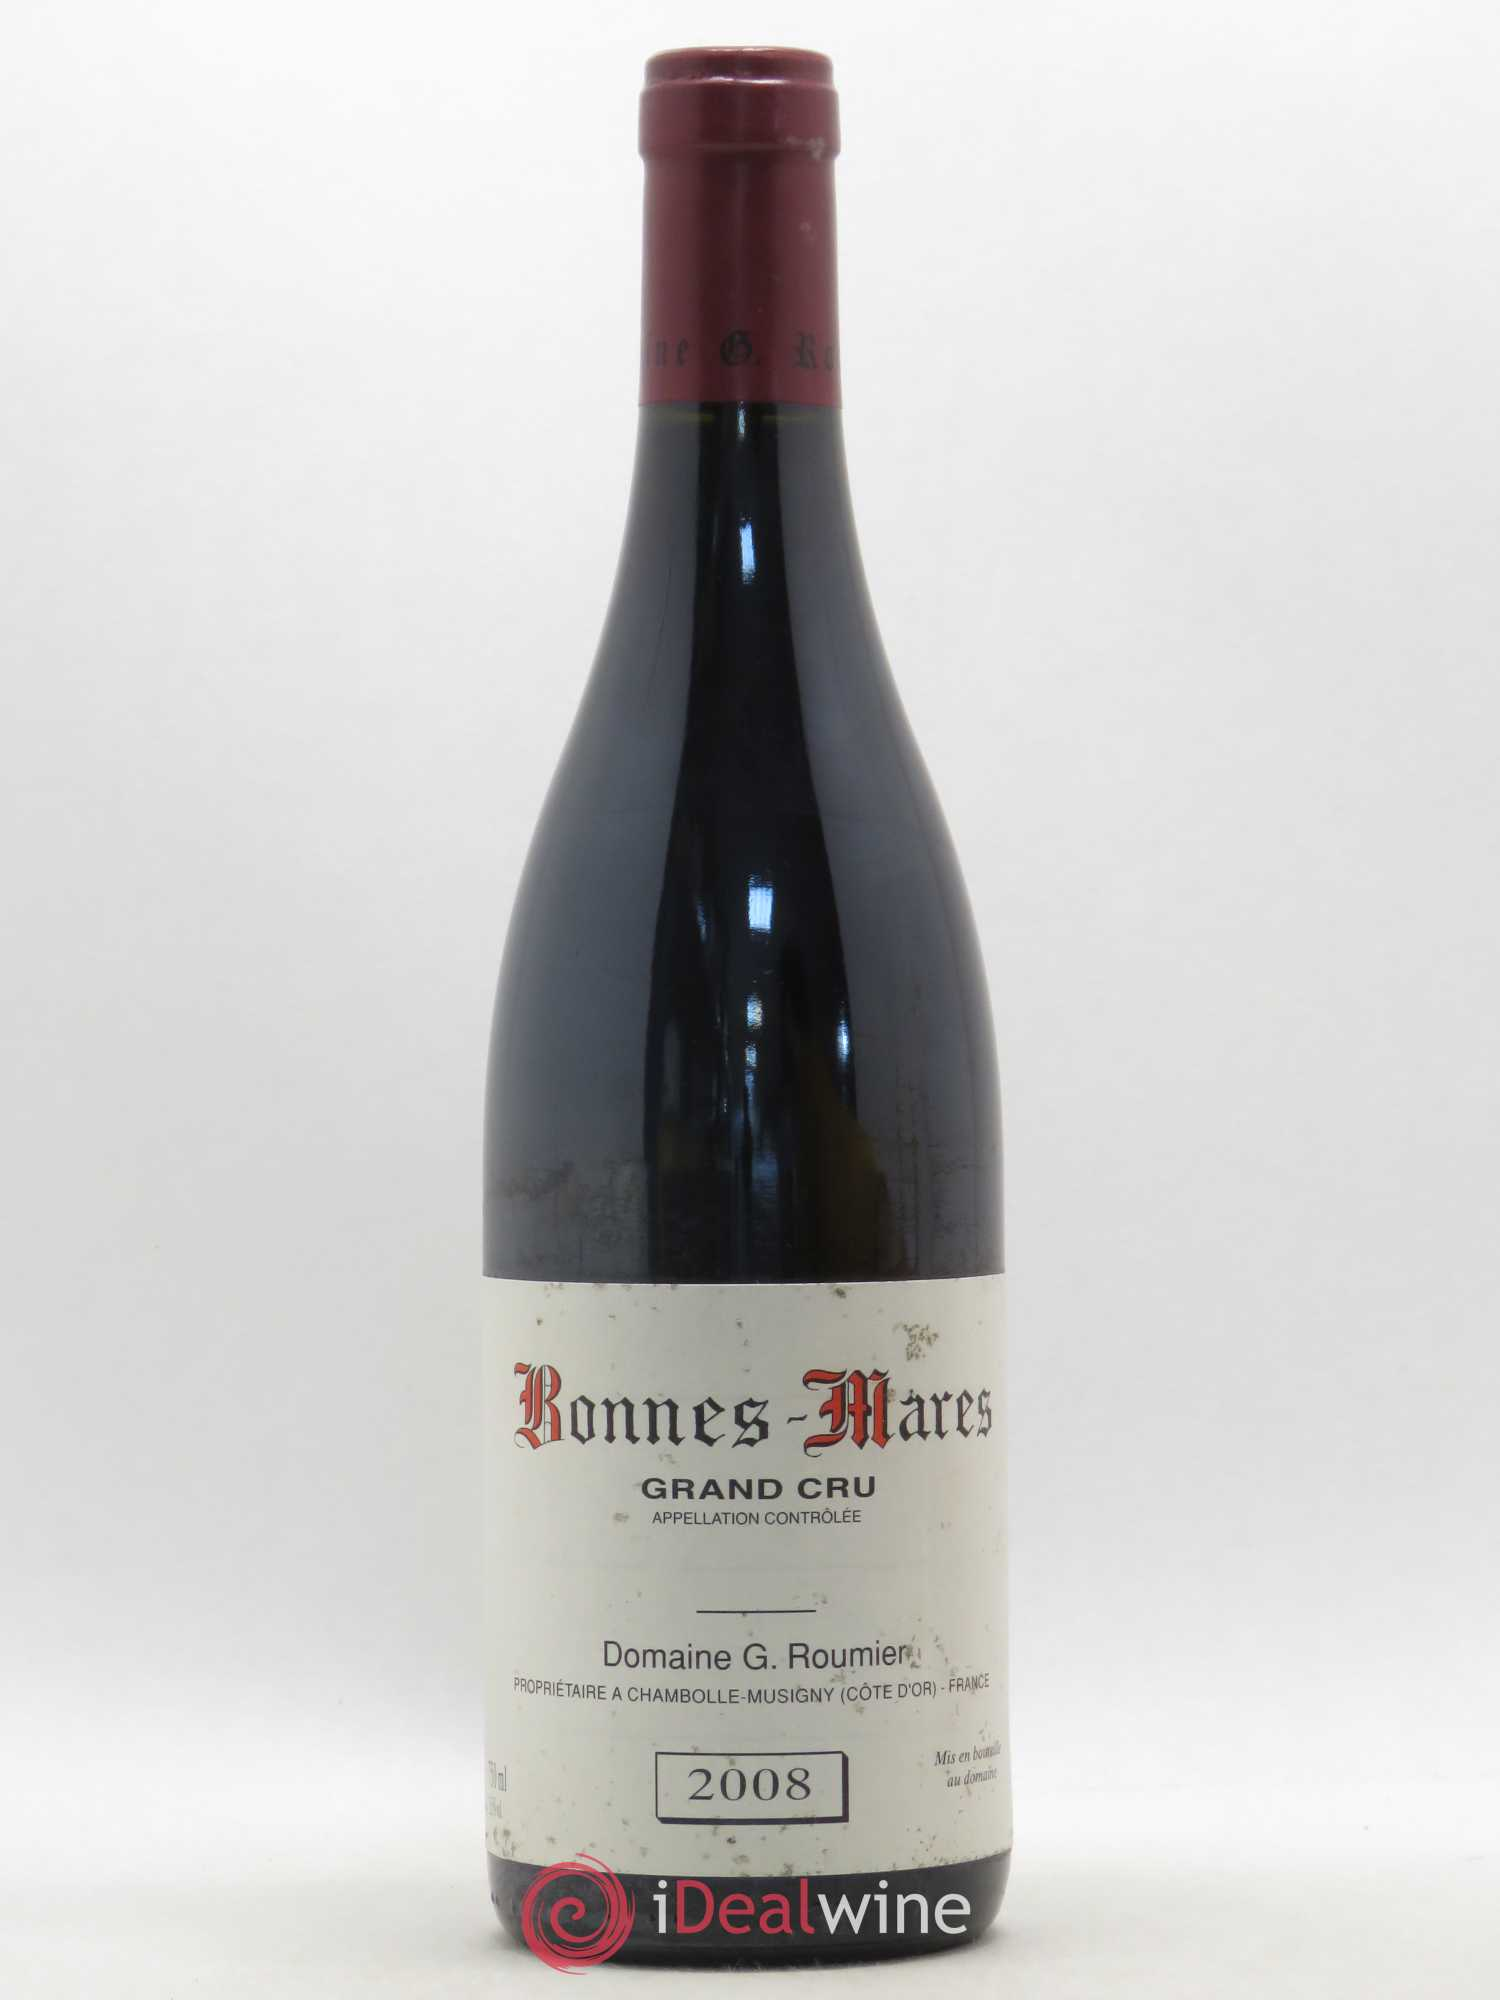 Bonnes-Mares Grand Cru Georges Roumier (Domaine)  2008 - Lot of 1 Bottle